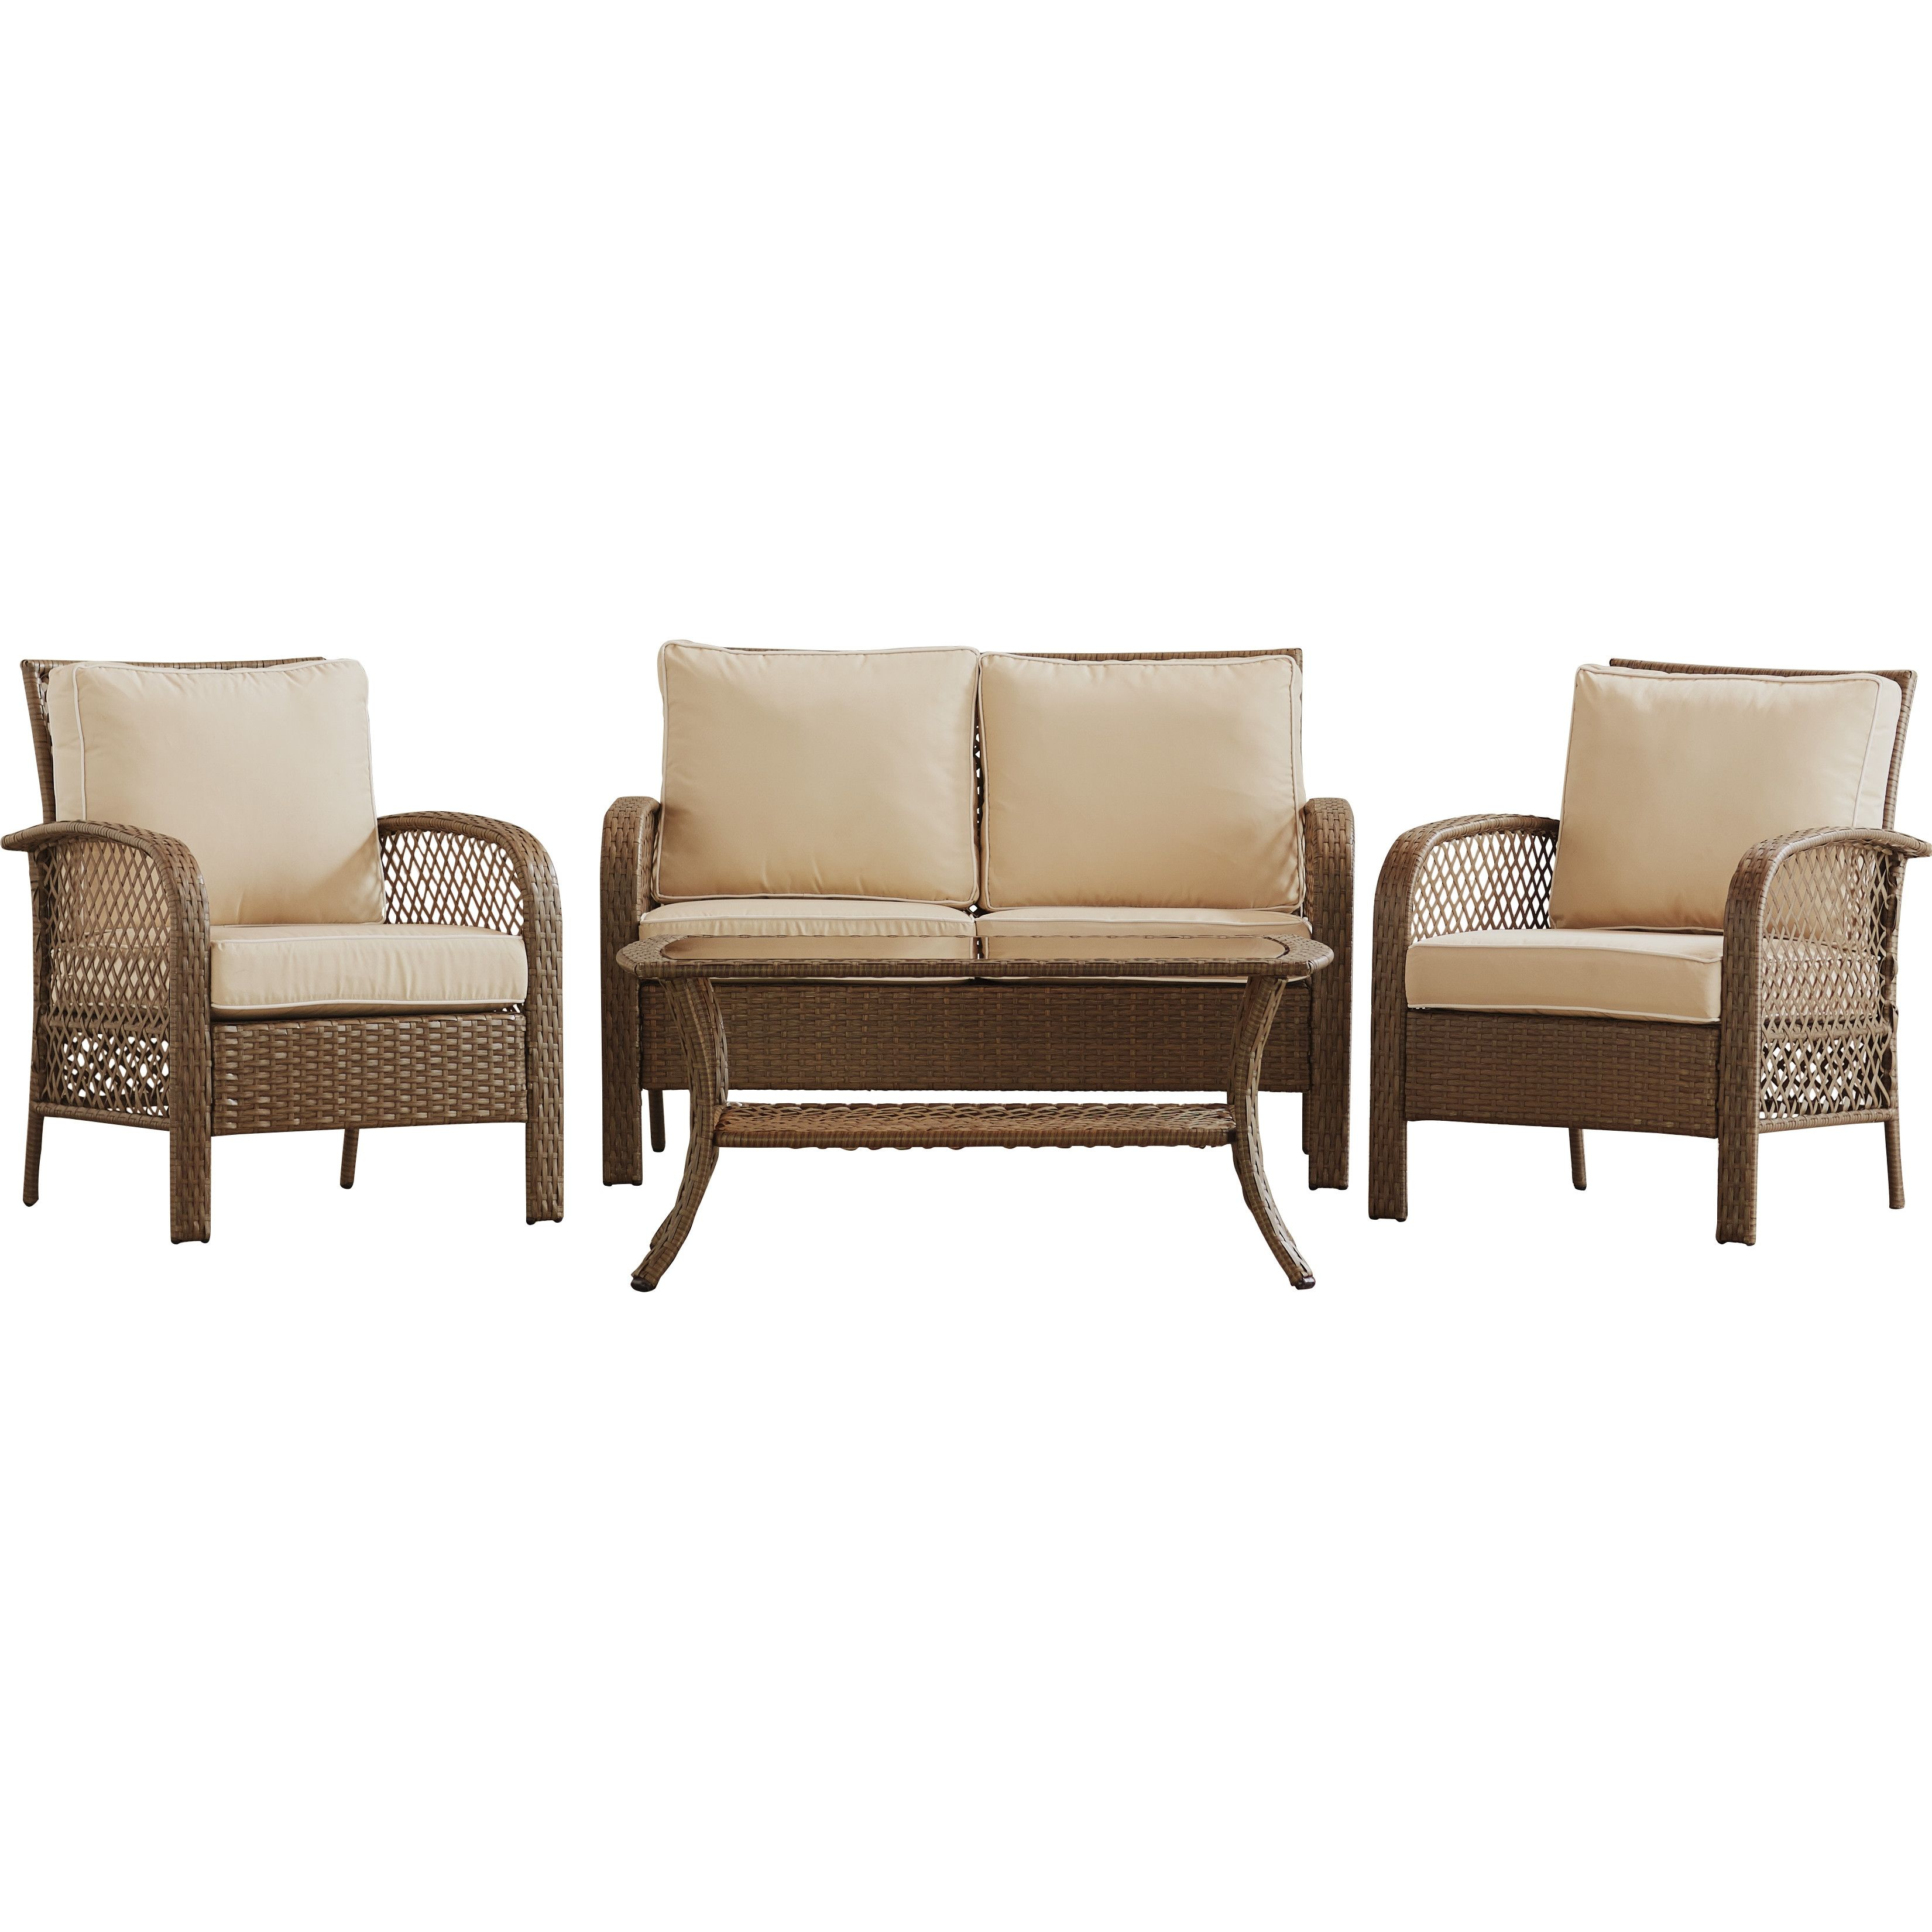 Beachcrest Home™ Niceville 4 Piece Deep Seating Group with Cushion